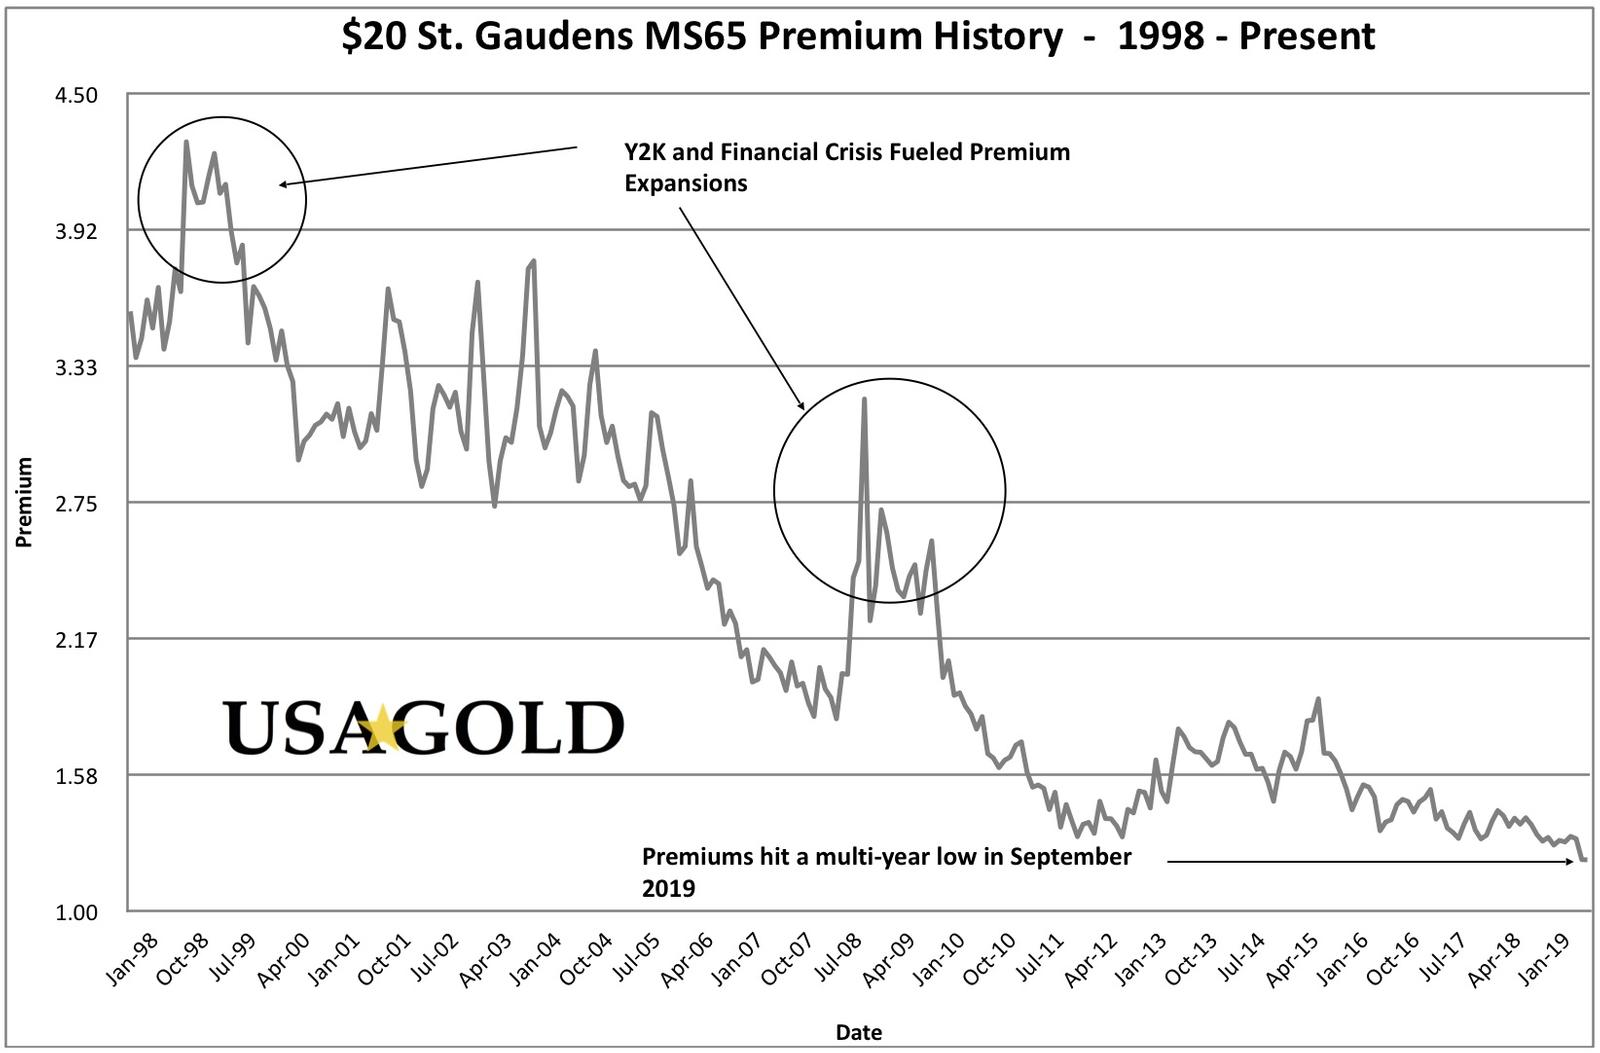 Track the value of MS65 U.S. $20 St. Gaudens gold coins as they compare to the price of gold with this 20 year premium history chart.